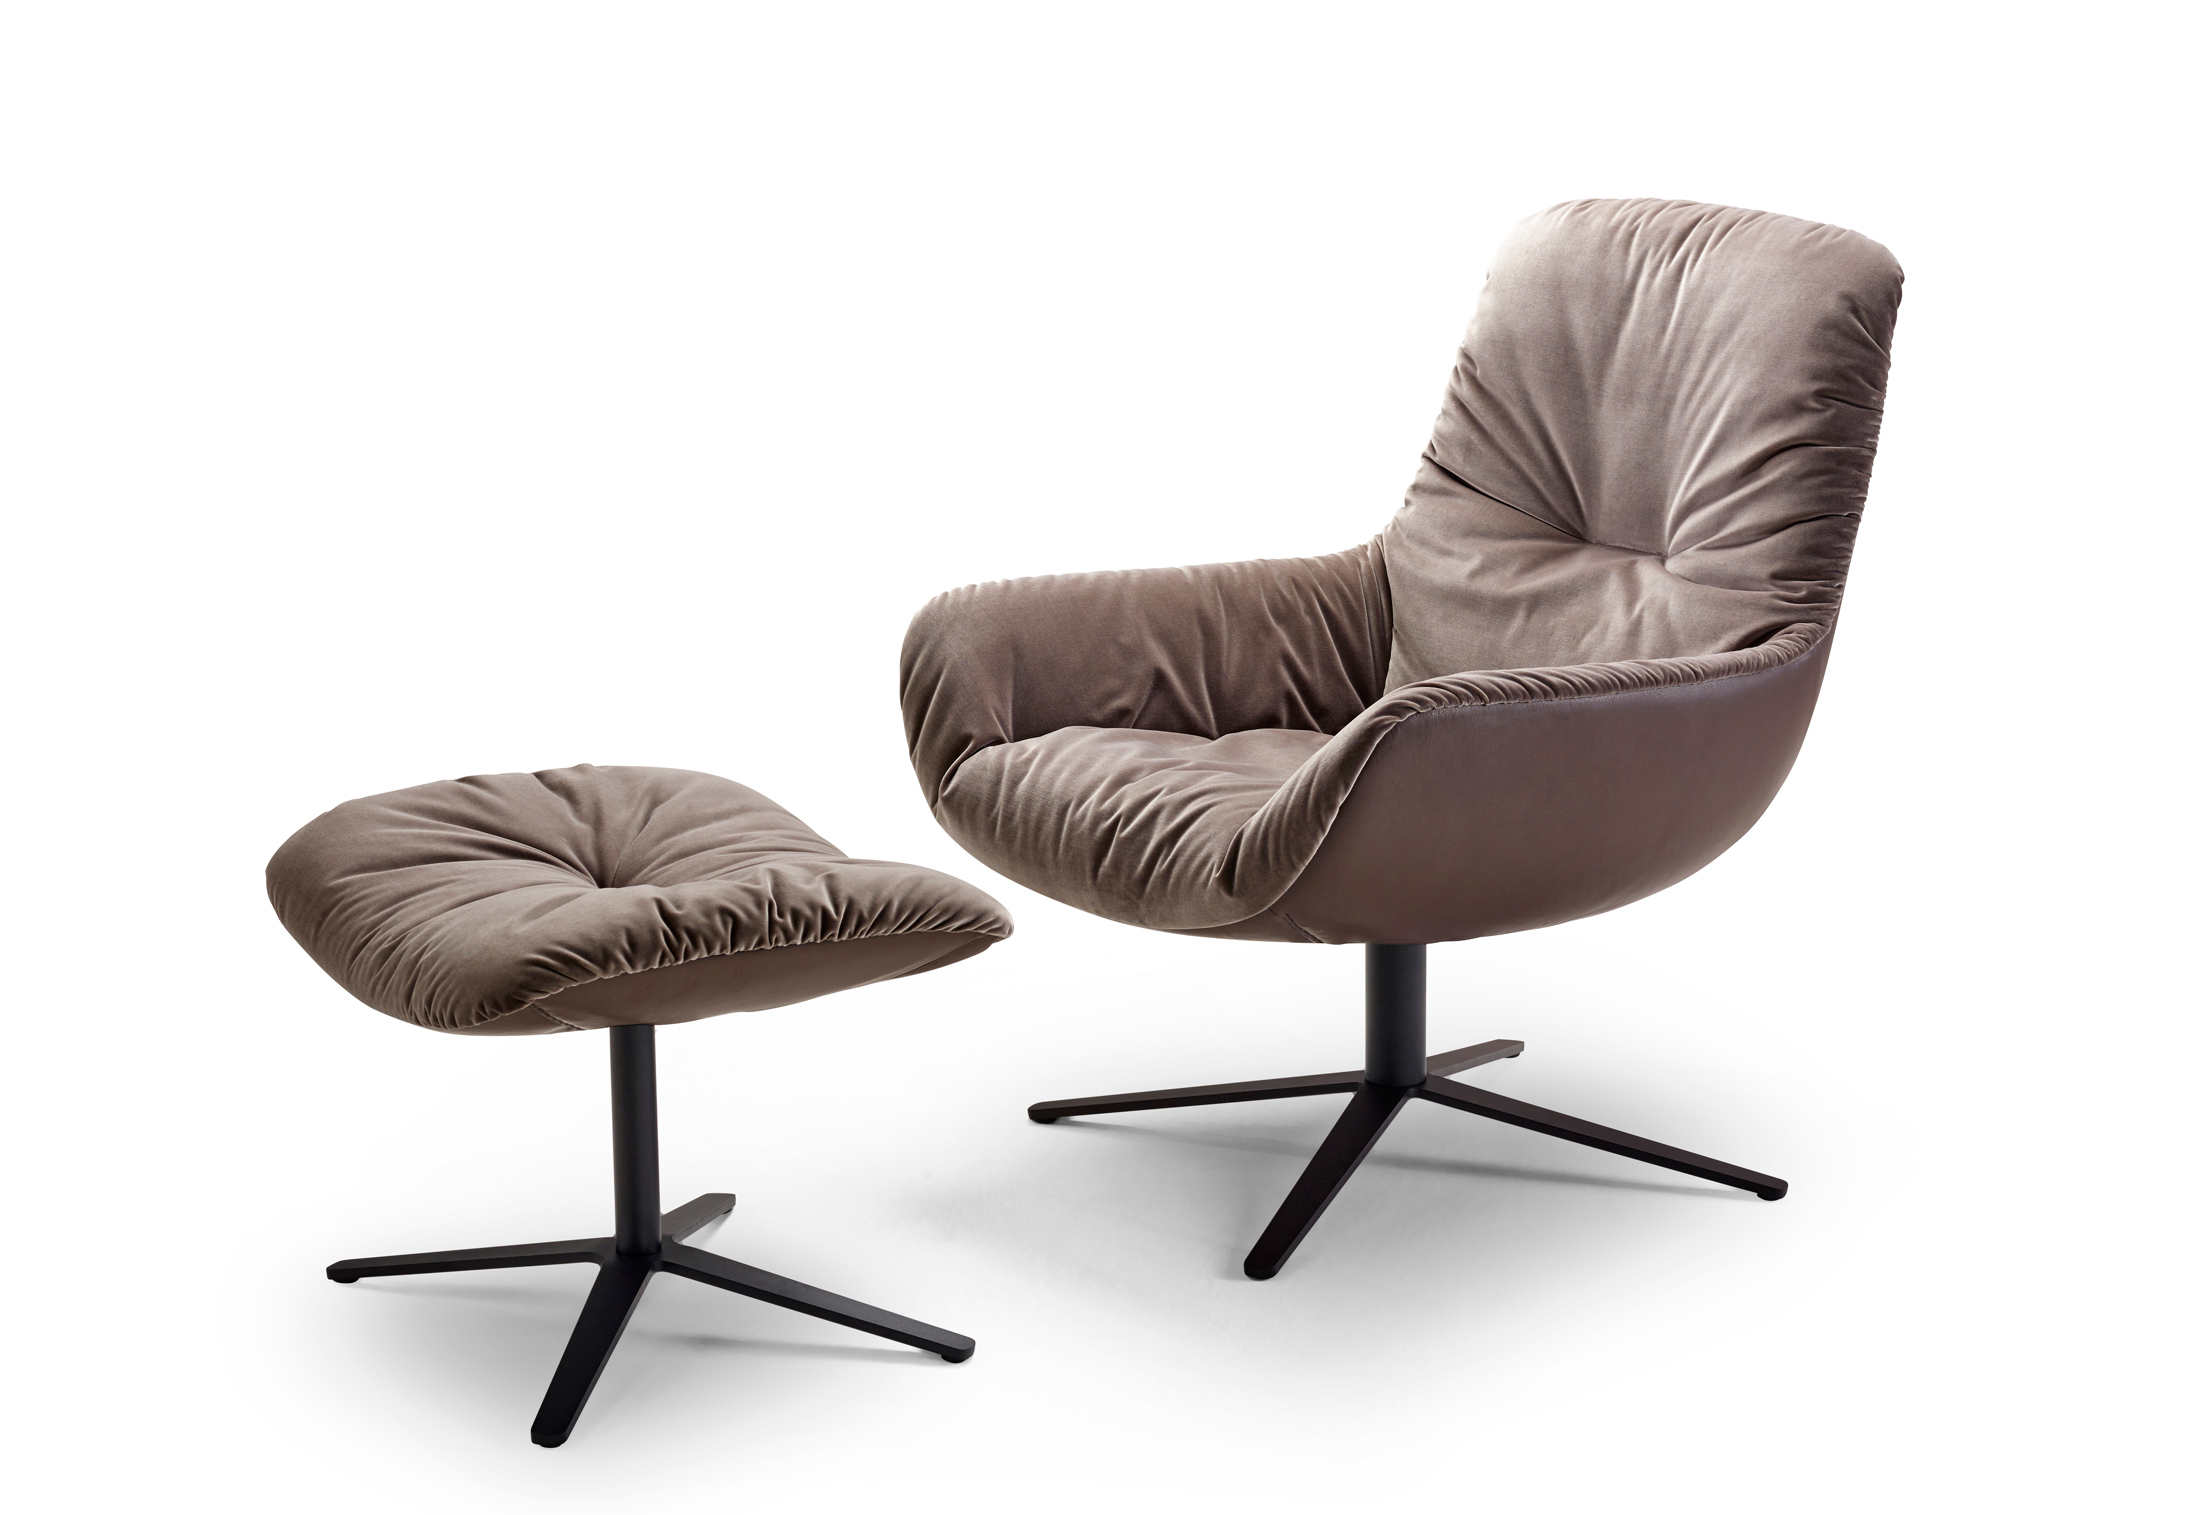 Surprising Leya Lounge Chair With X Base Frame By Freifrau Stylepark Cjindustries Chair Design For Home Cjindustriesco